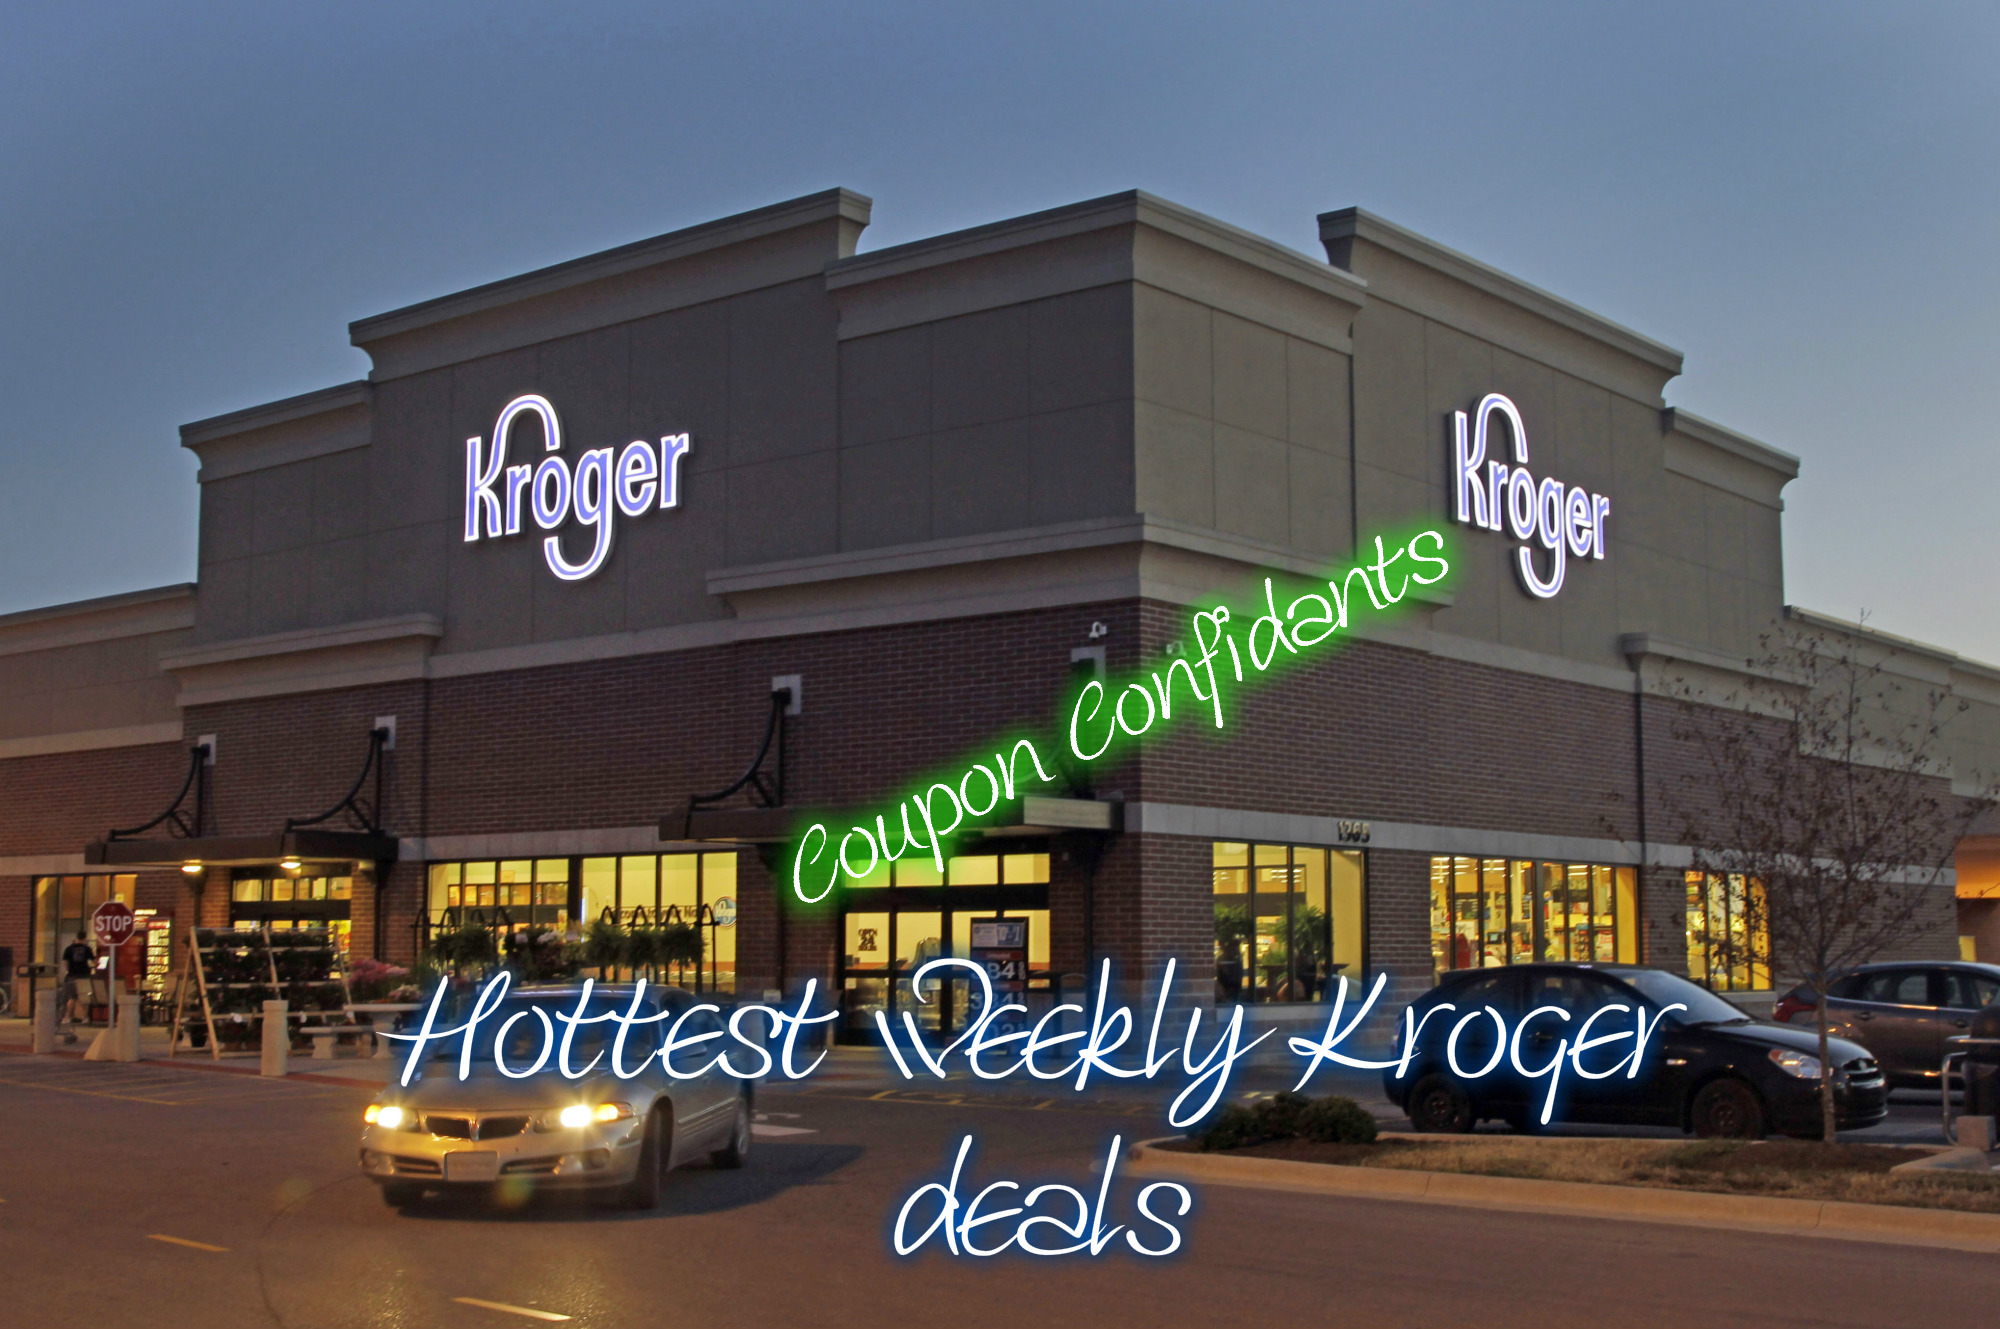 Kroger - Jan 31 - Feb 6